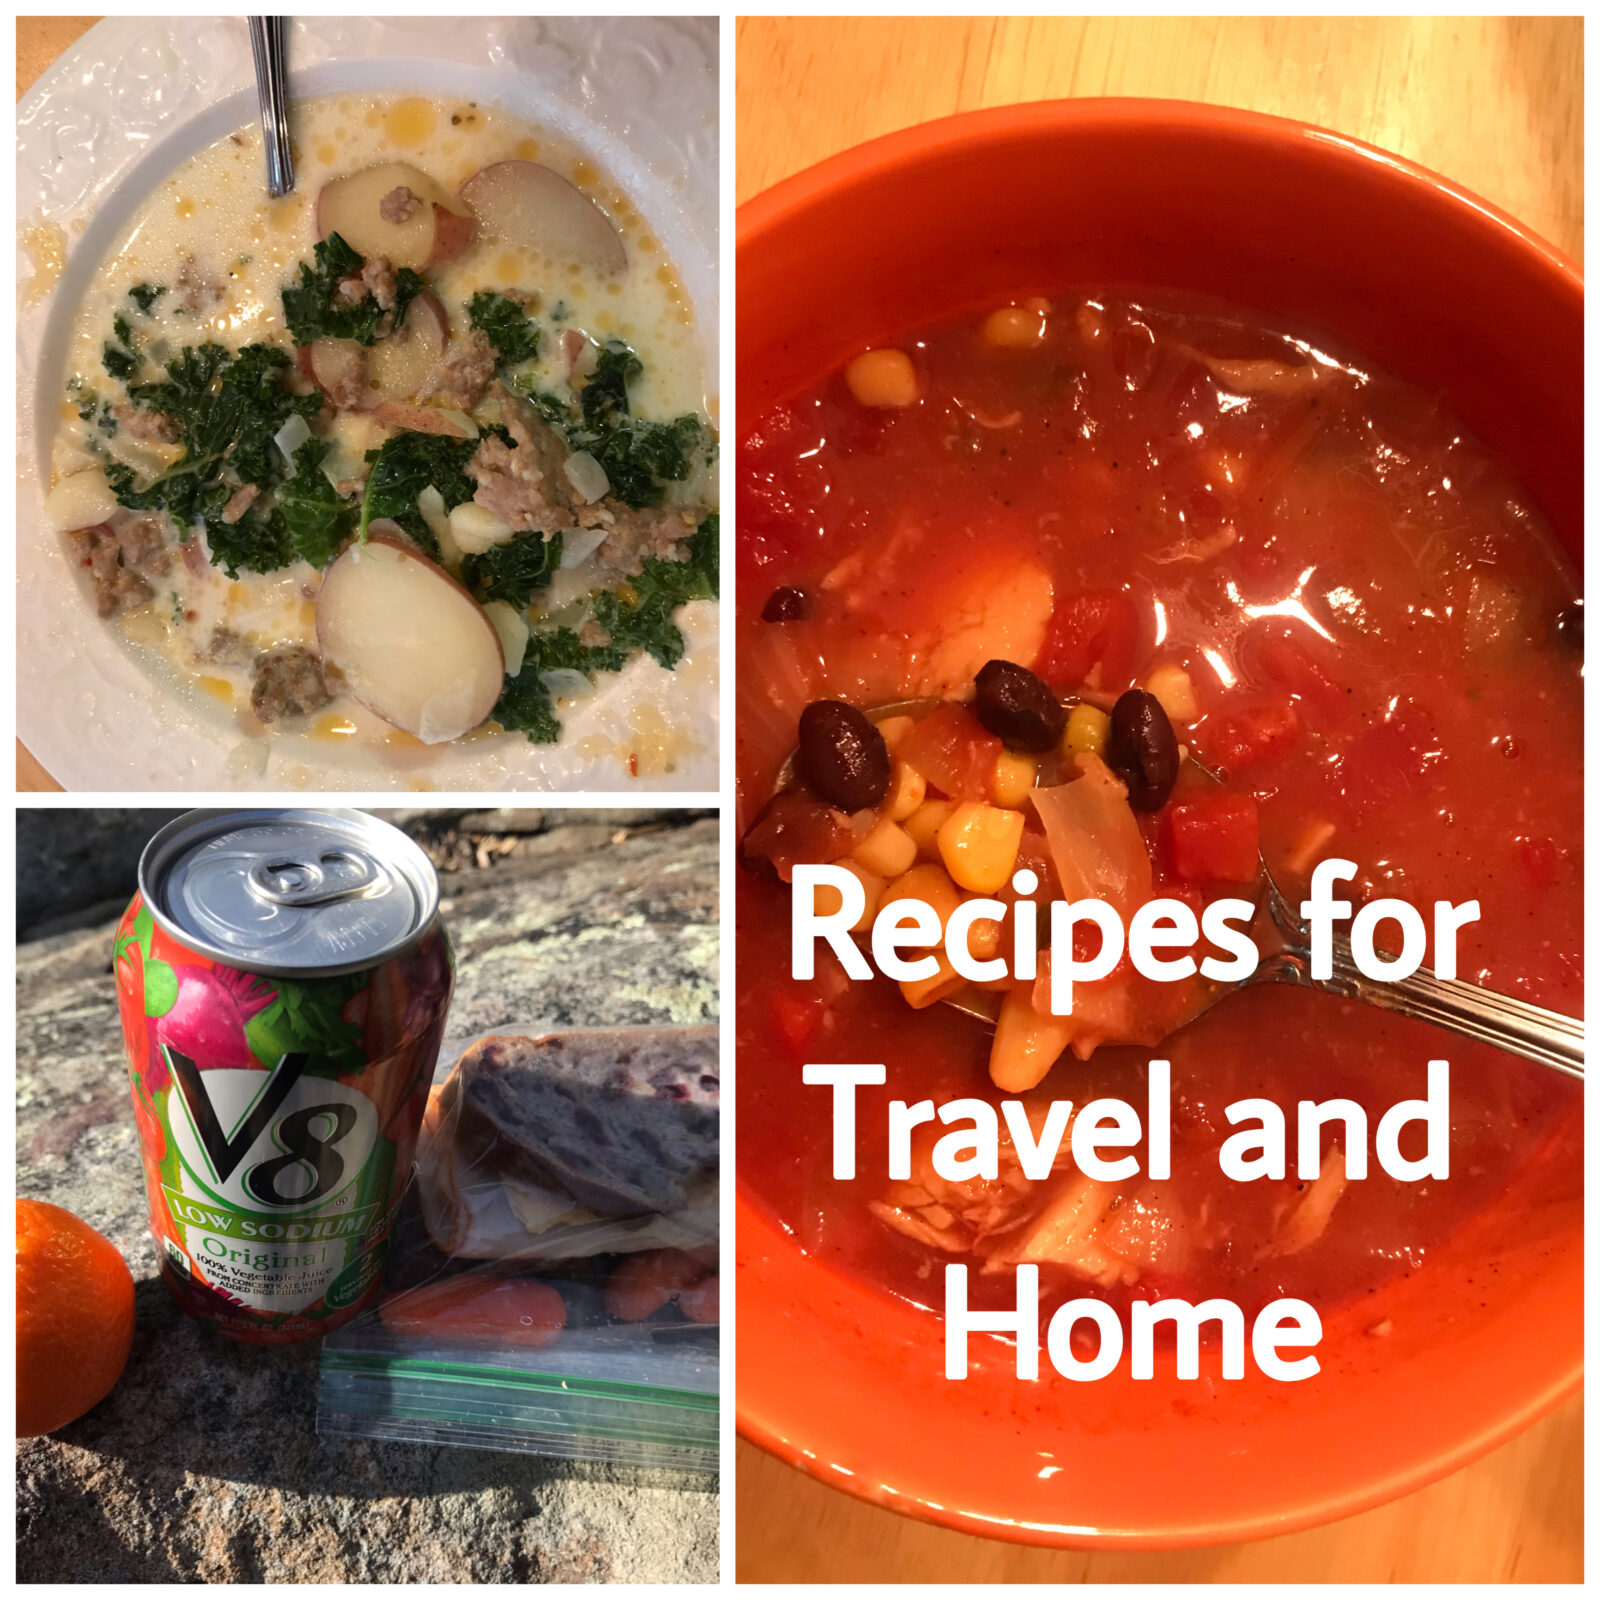 Recipes for Travel